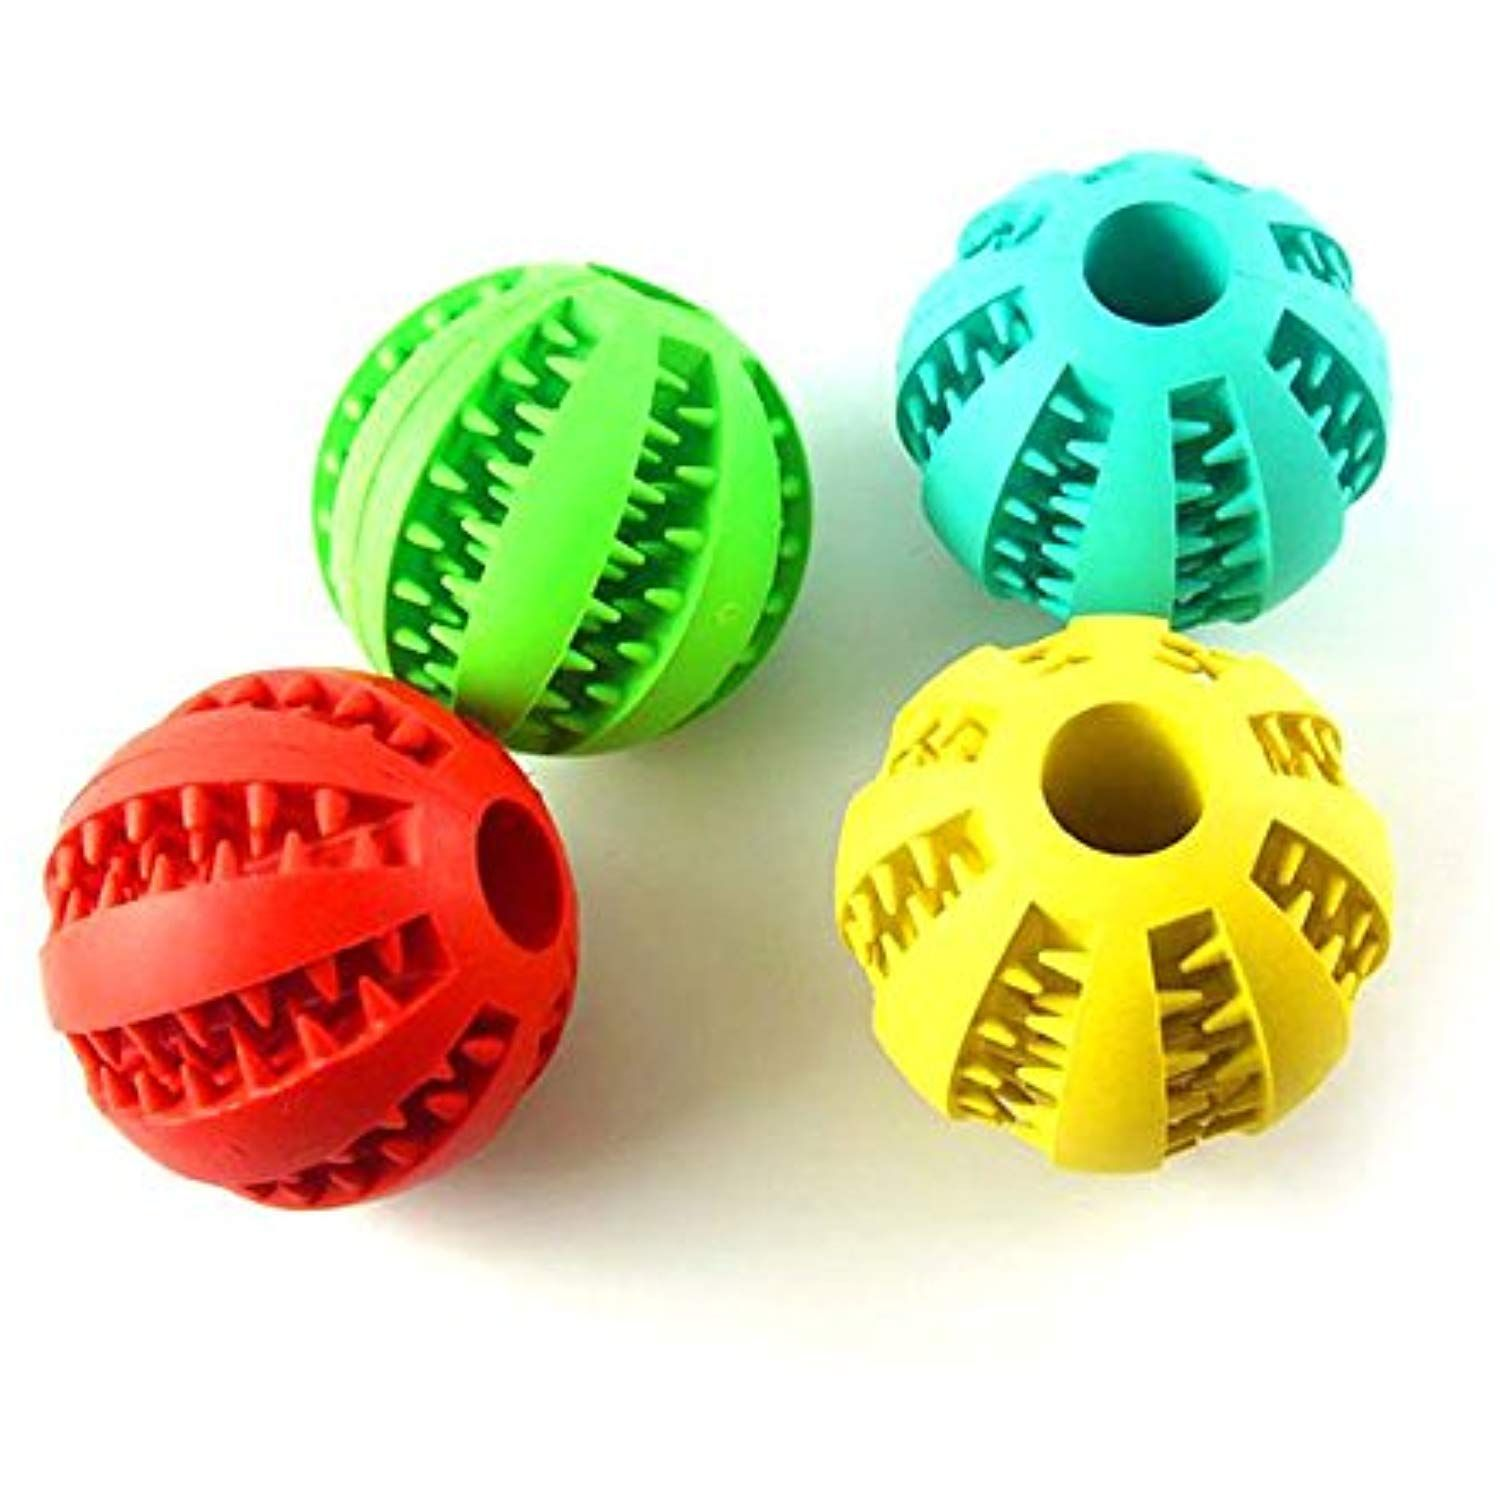 Grt Dog Toy Pet Food Chew Toy Ball Mint Spiced Elastic Ball